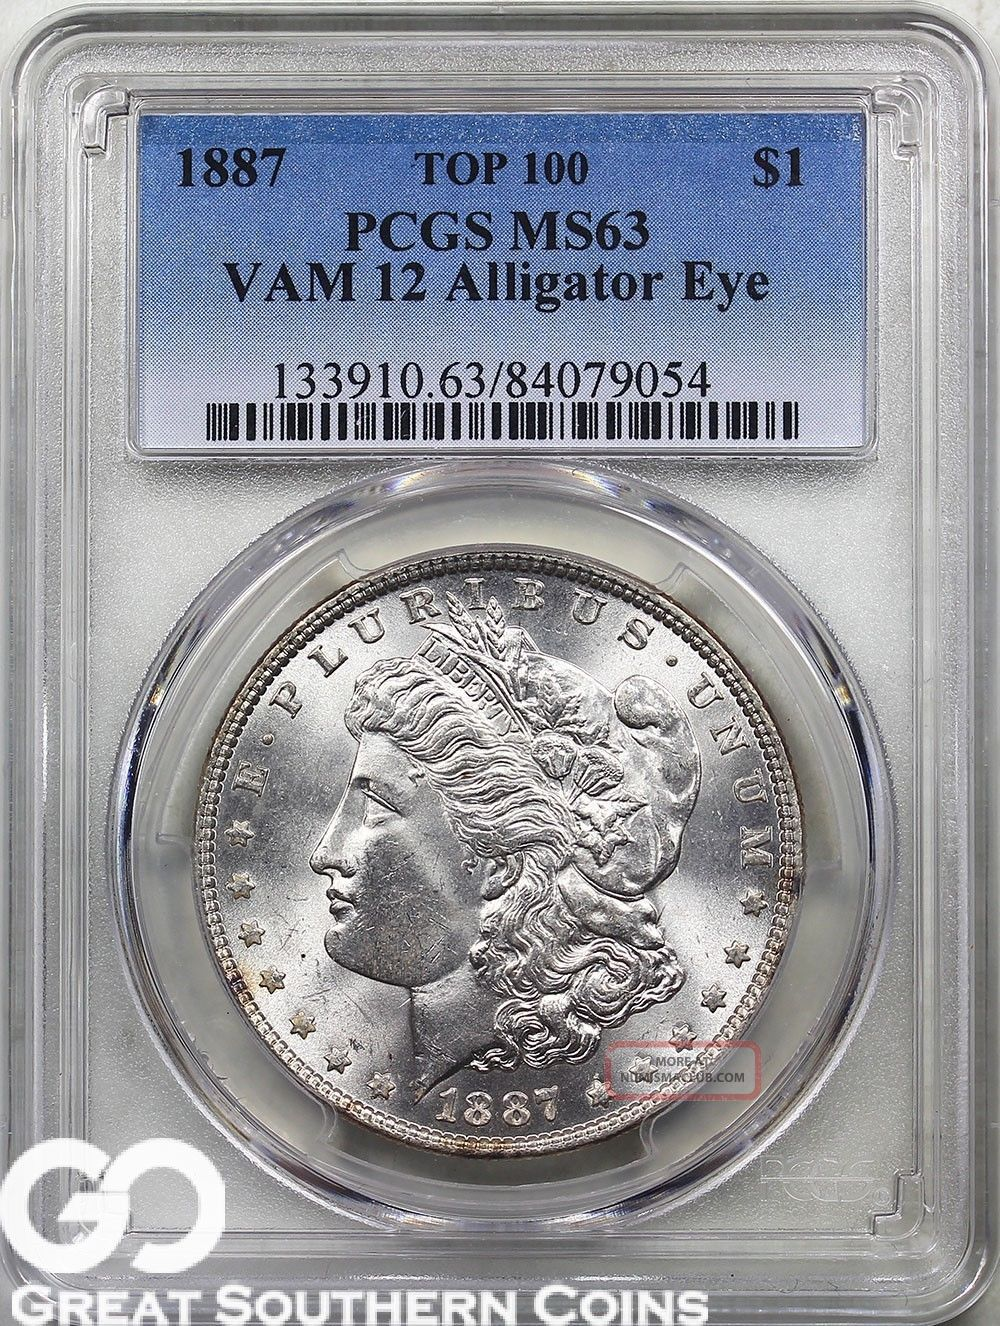 1887 Morgan Silver Dollar,  Vam - 12 Top - 100,  Pcgs Ms 63 Alligator Eye,  S/h Dollars photo